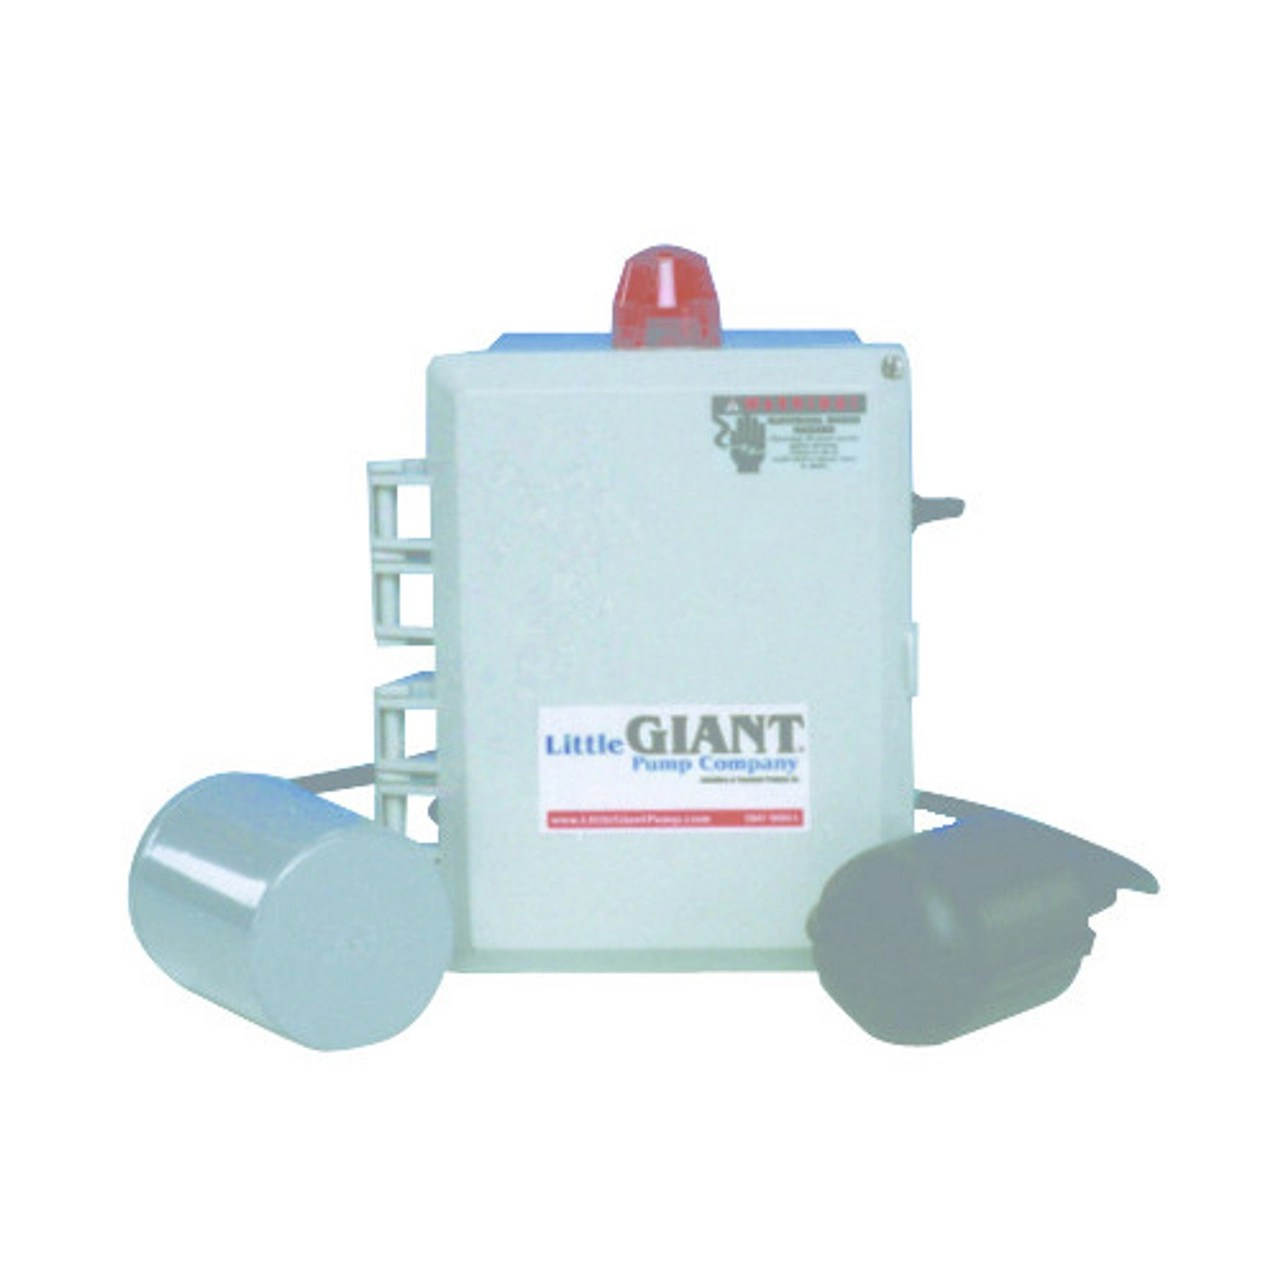 little giant 513267 single phase simplex indoor outdoor alarm system pump control [ 1280 x 1280 Pixel ]